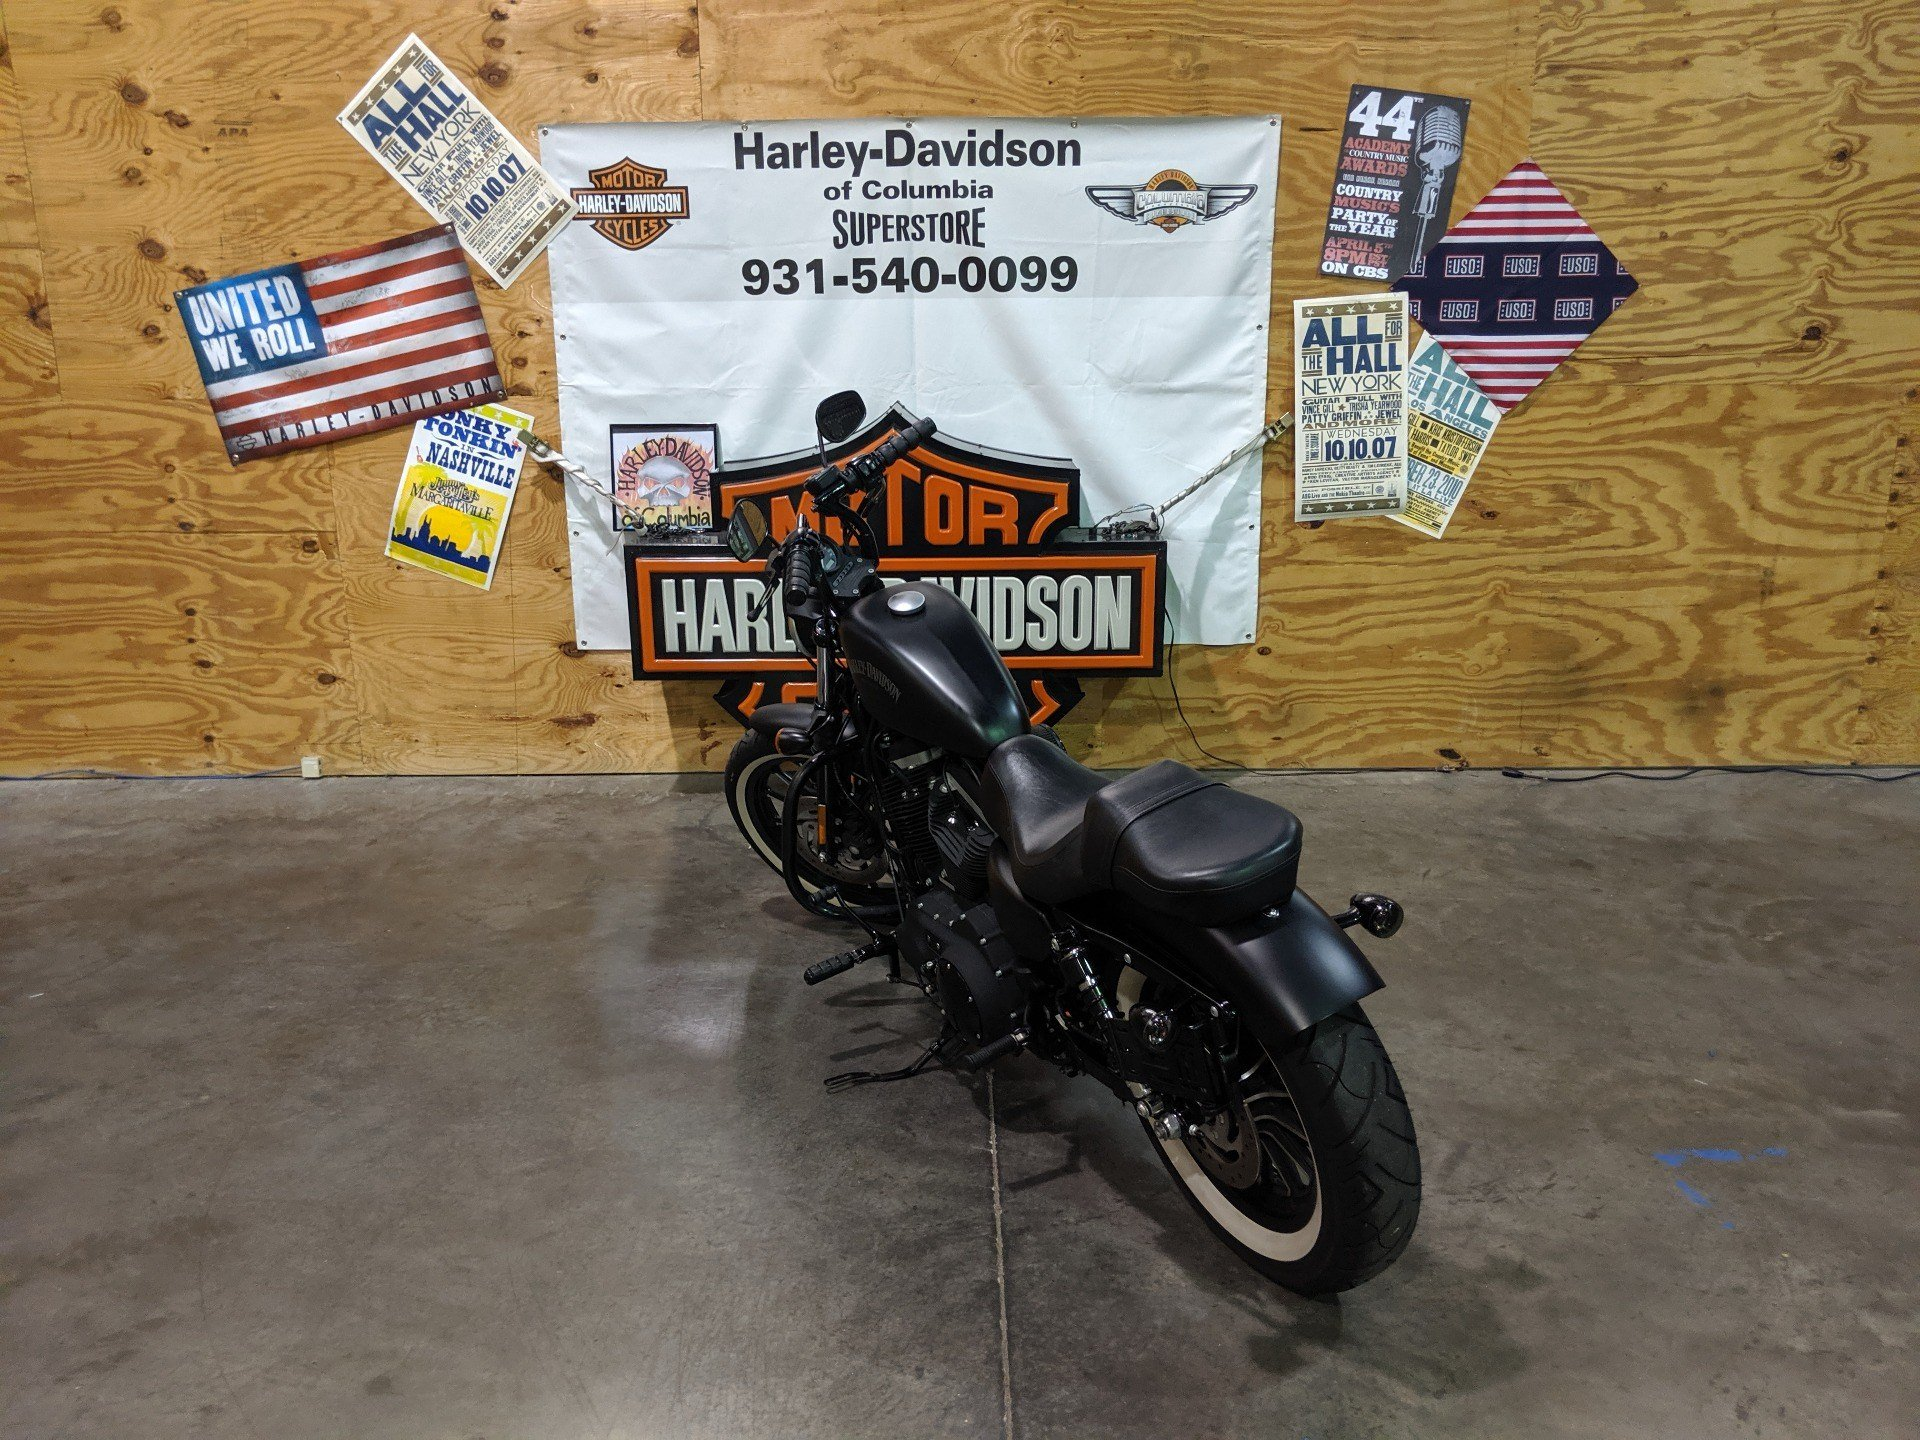 2013 Harley-Davidson XL883N in Columbia, Tennessee - Photo 6